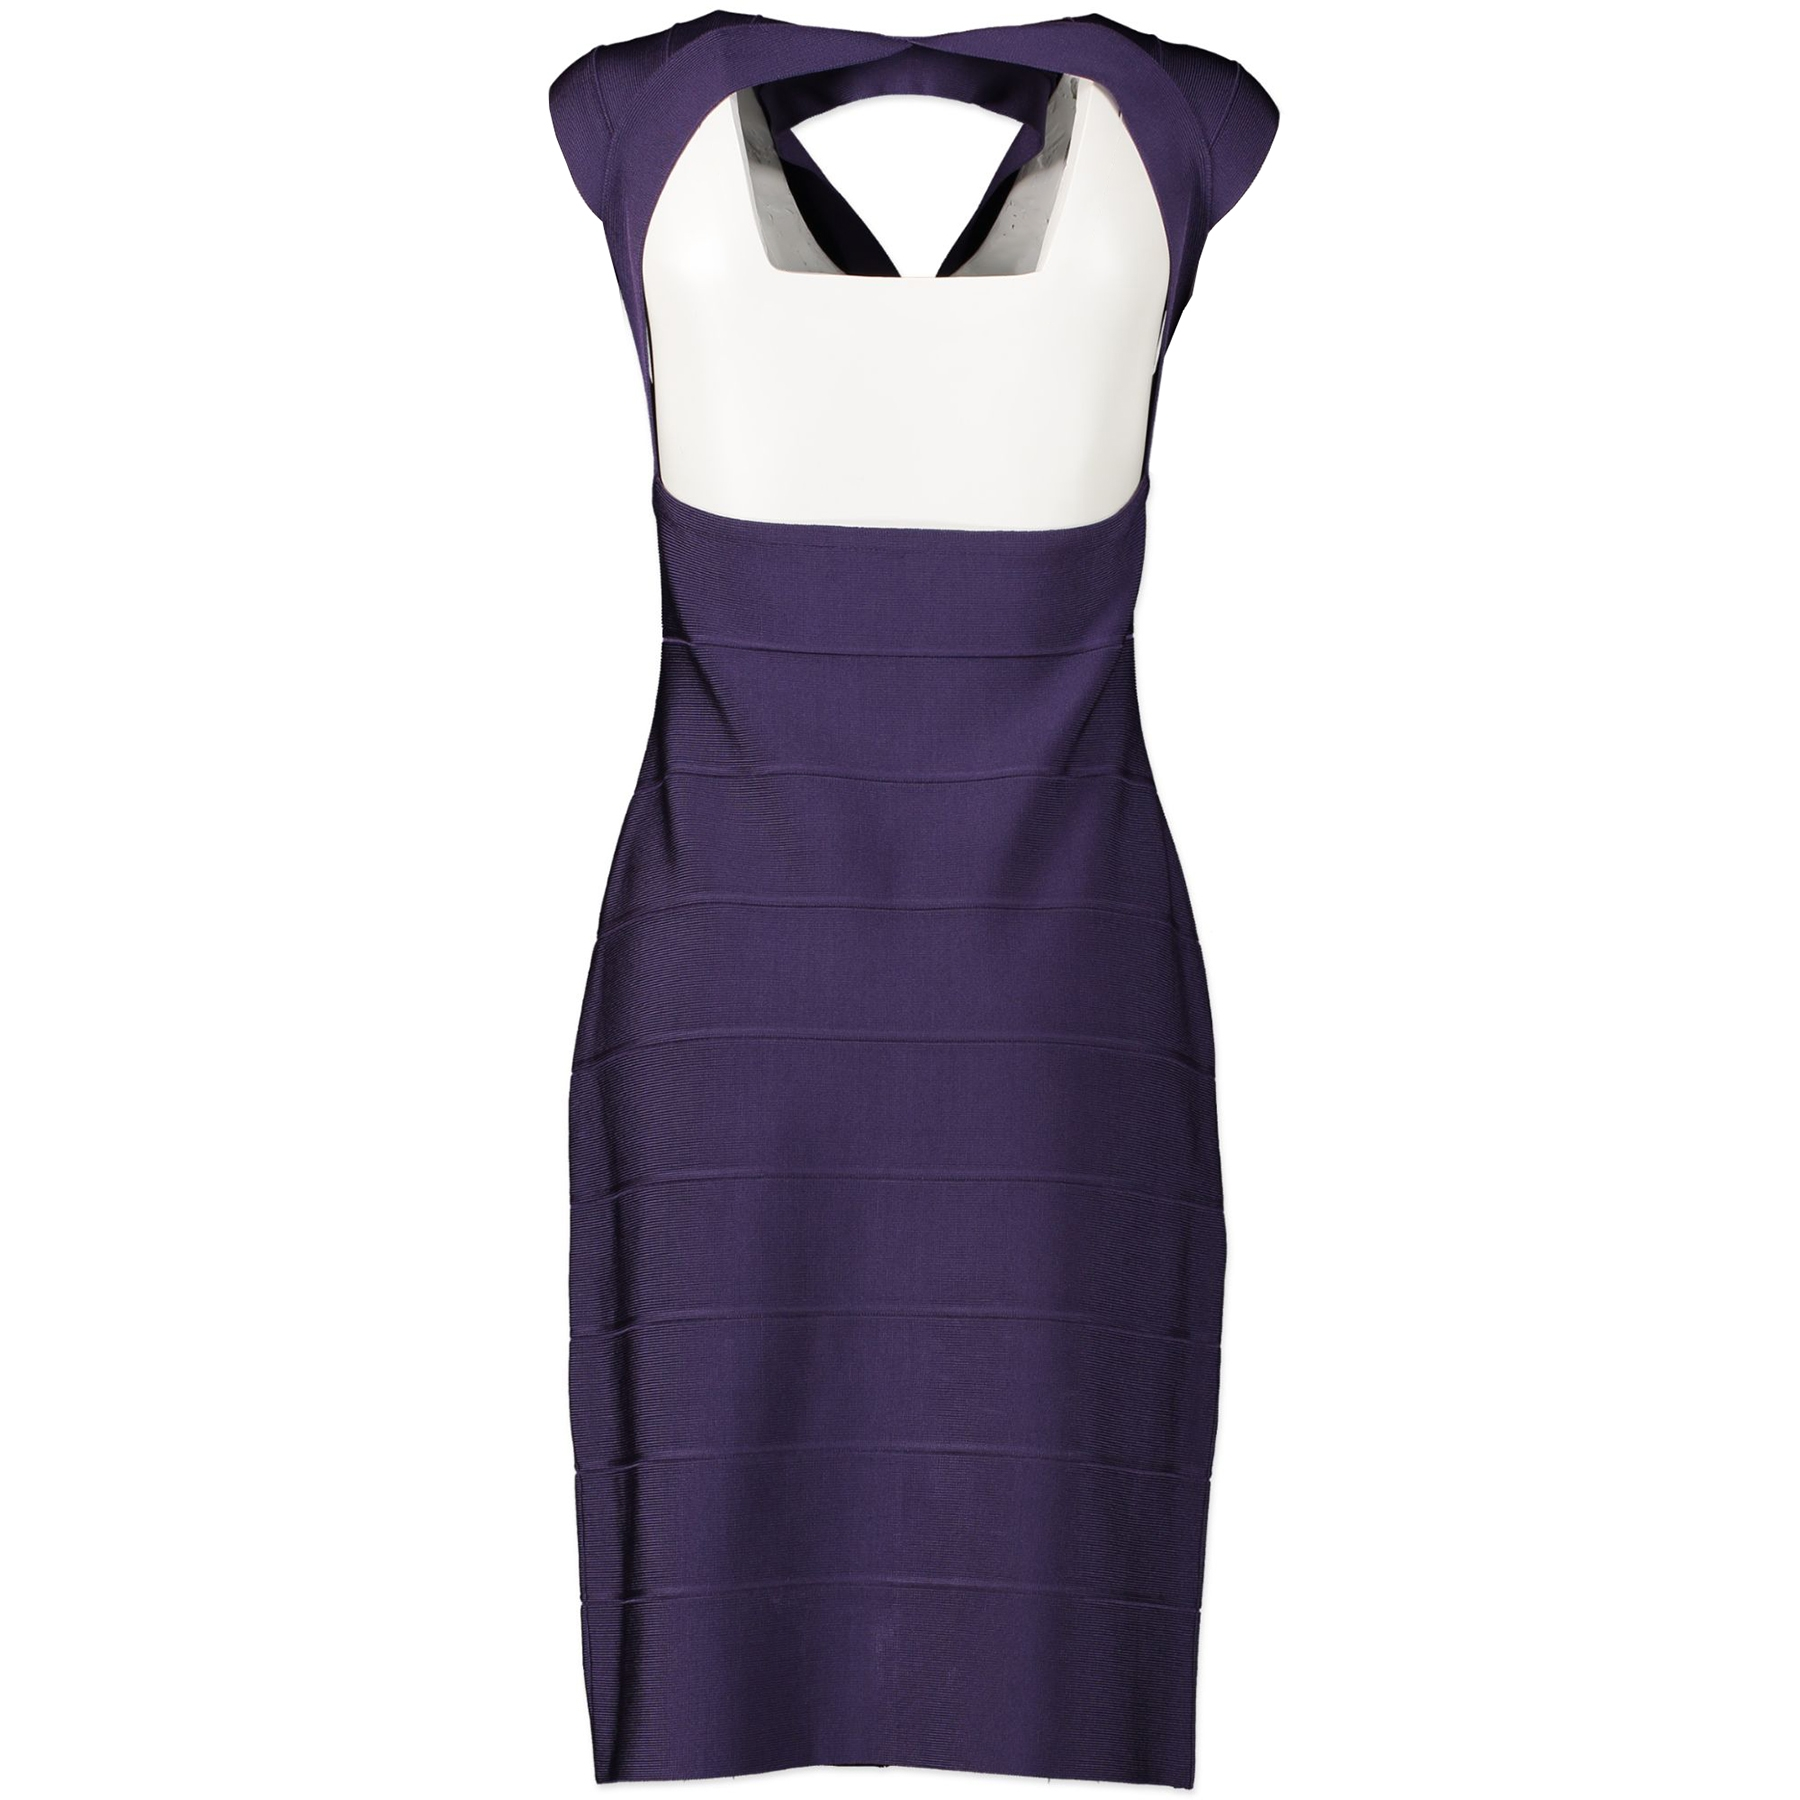 Herve Leger Purple Zip Front V-Neck Bandage Dress available for the best price at Labellov secondhand vintage luxury designer store